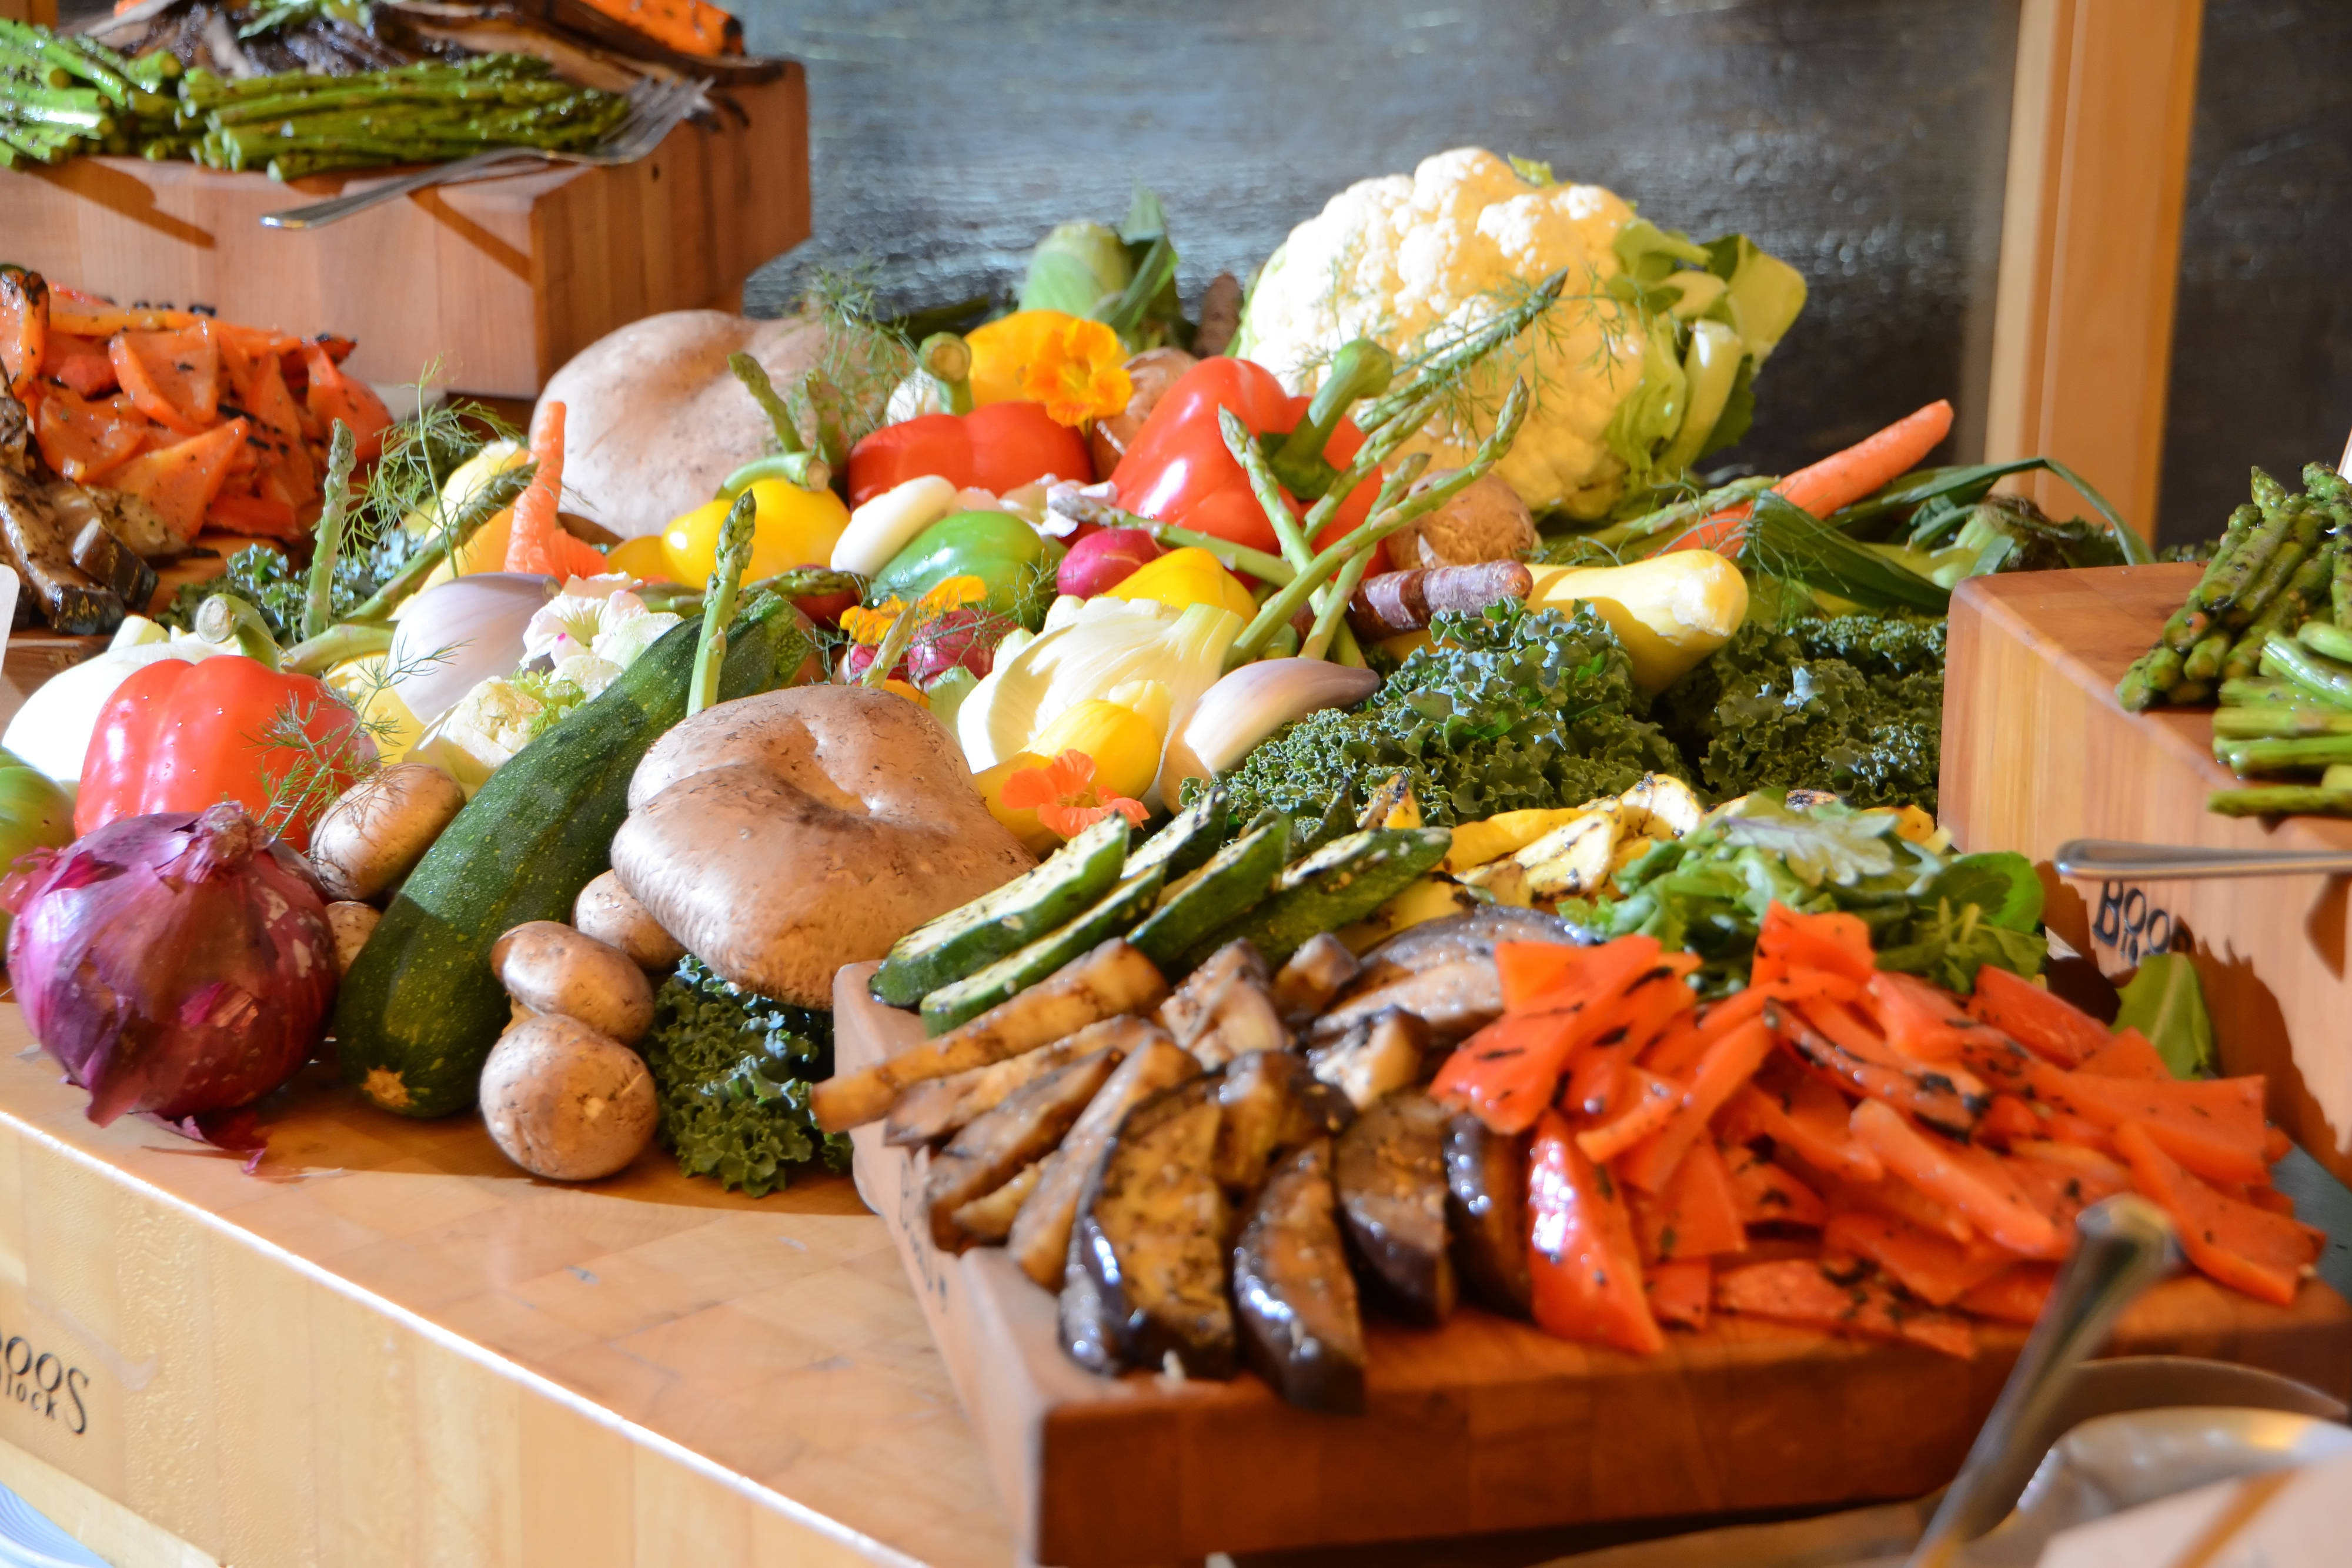 Display Station – Grilled Vegetable Platter